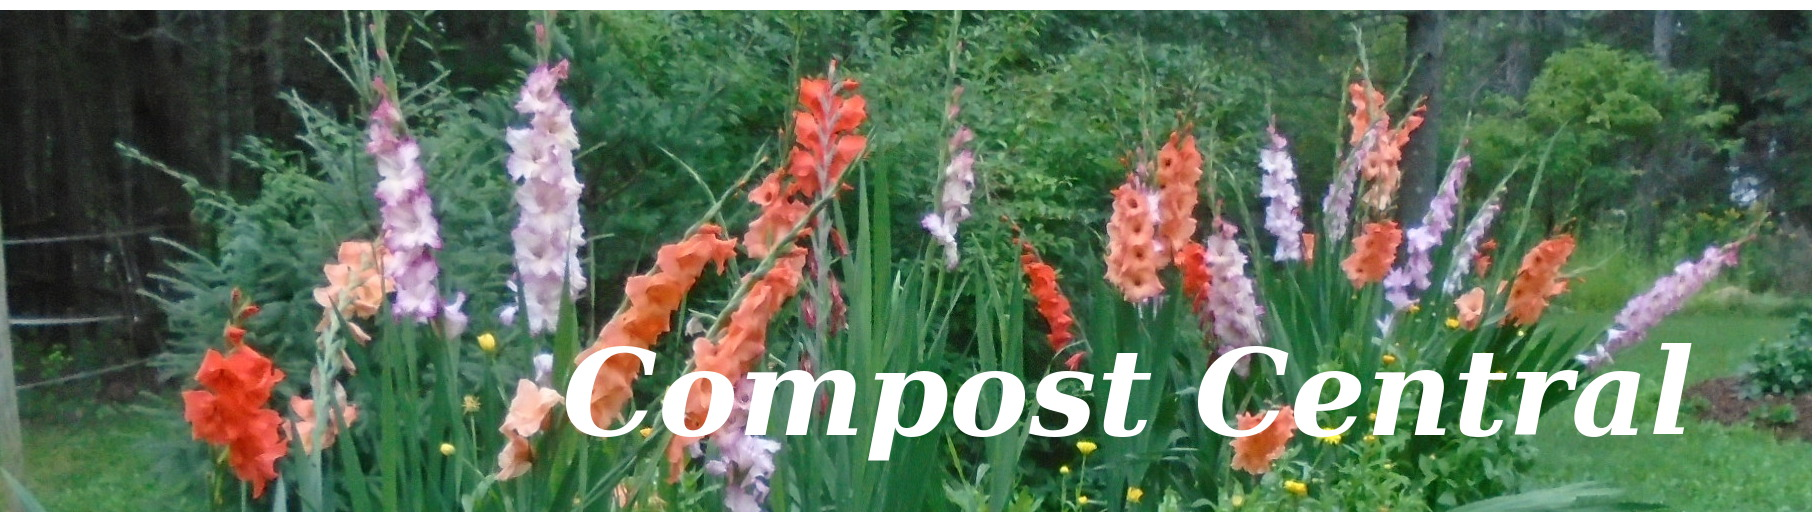 logo image for compost central